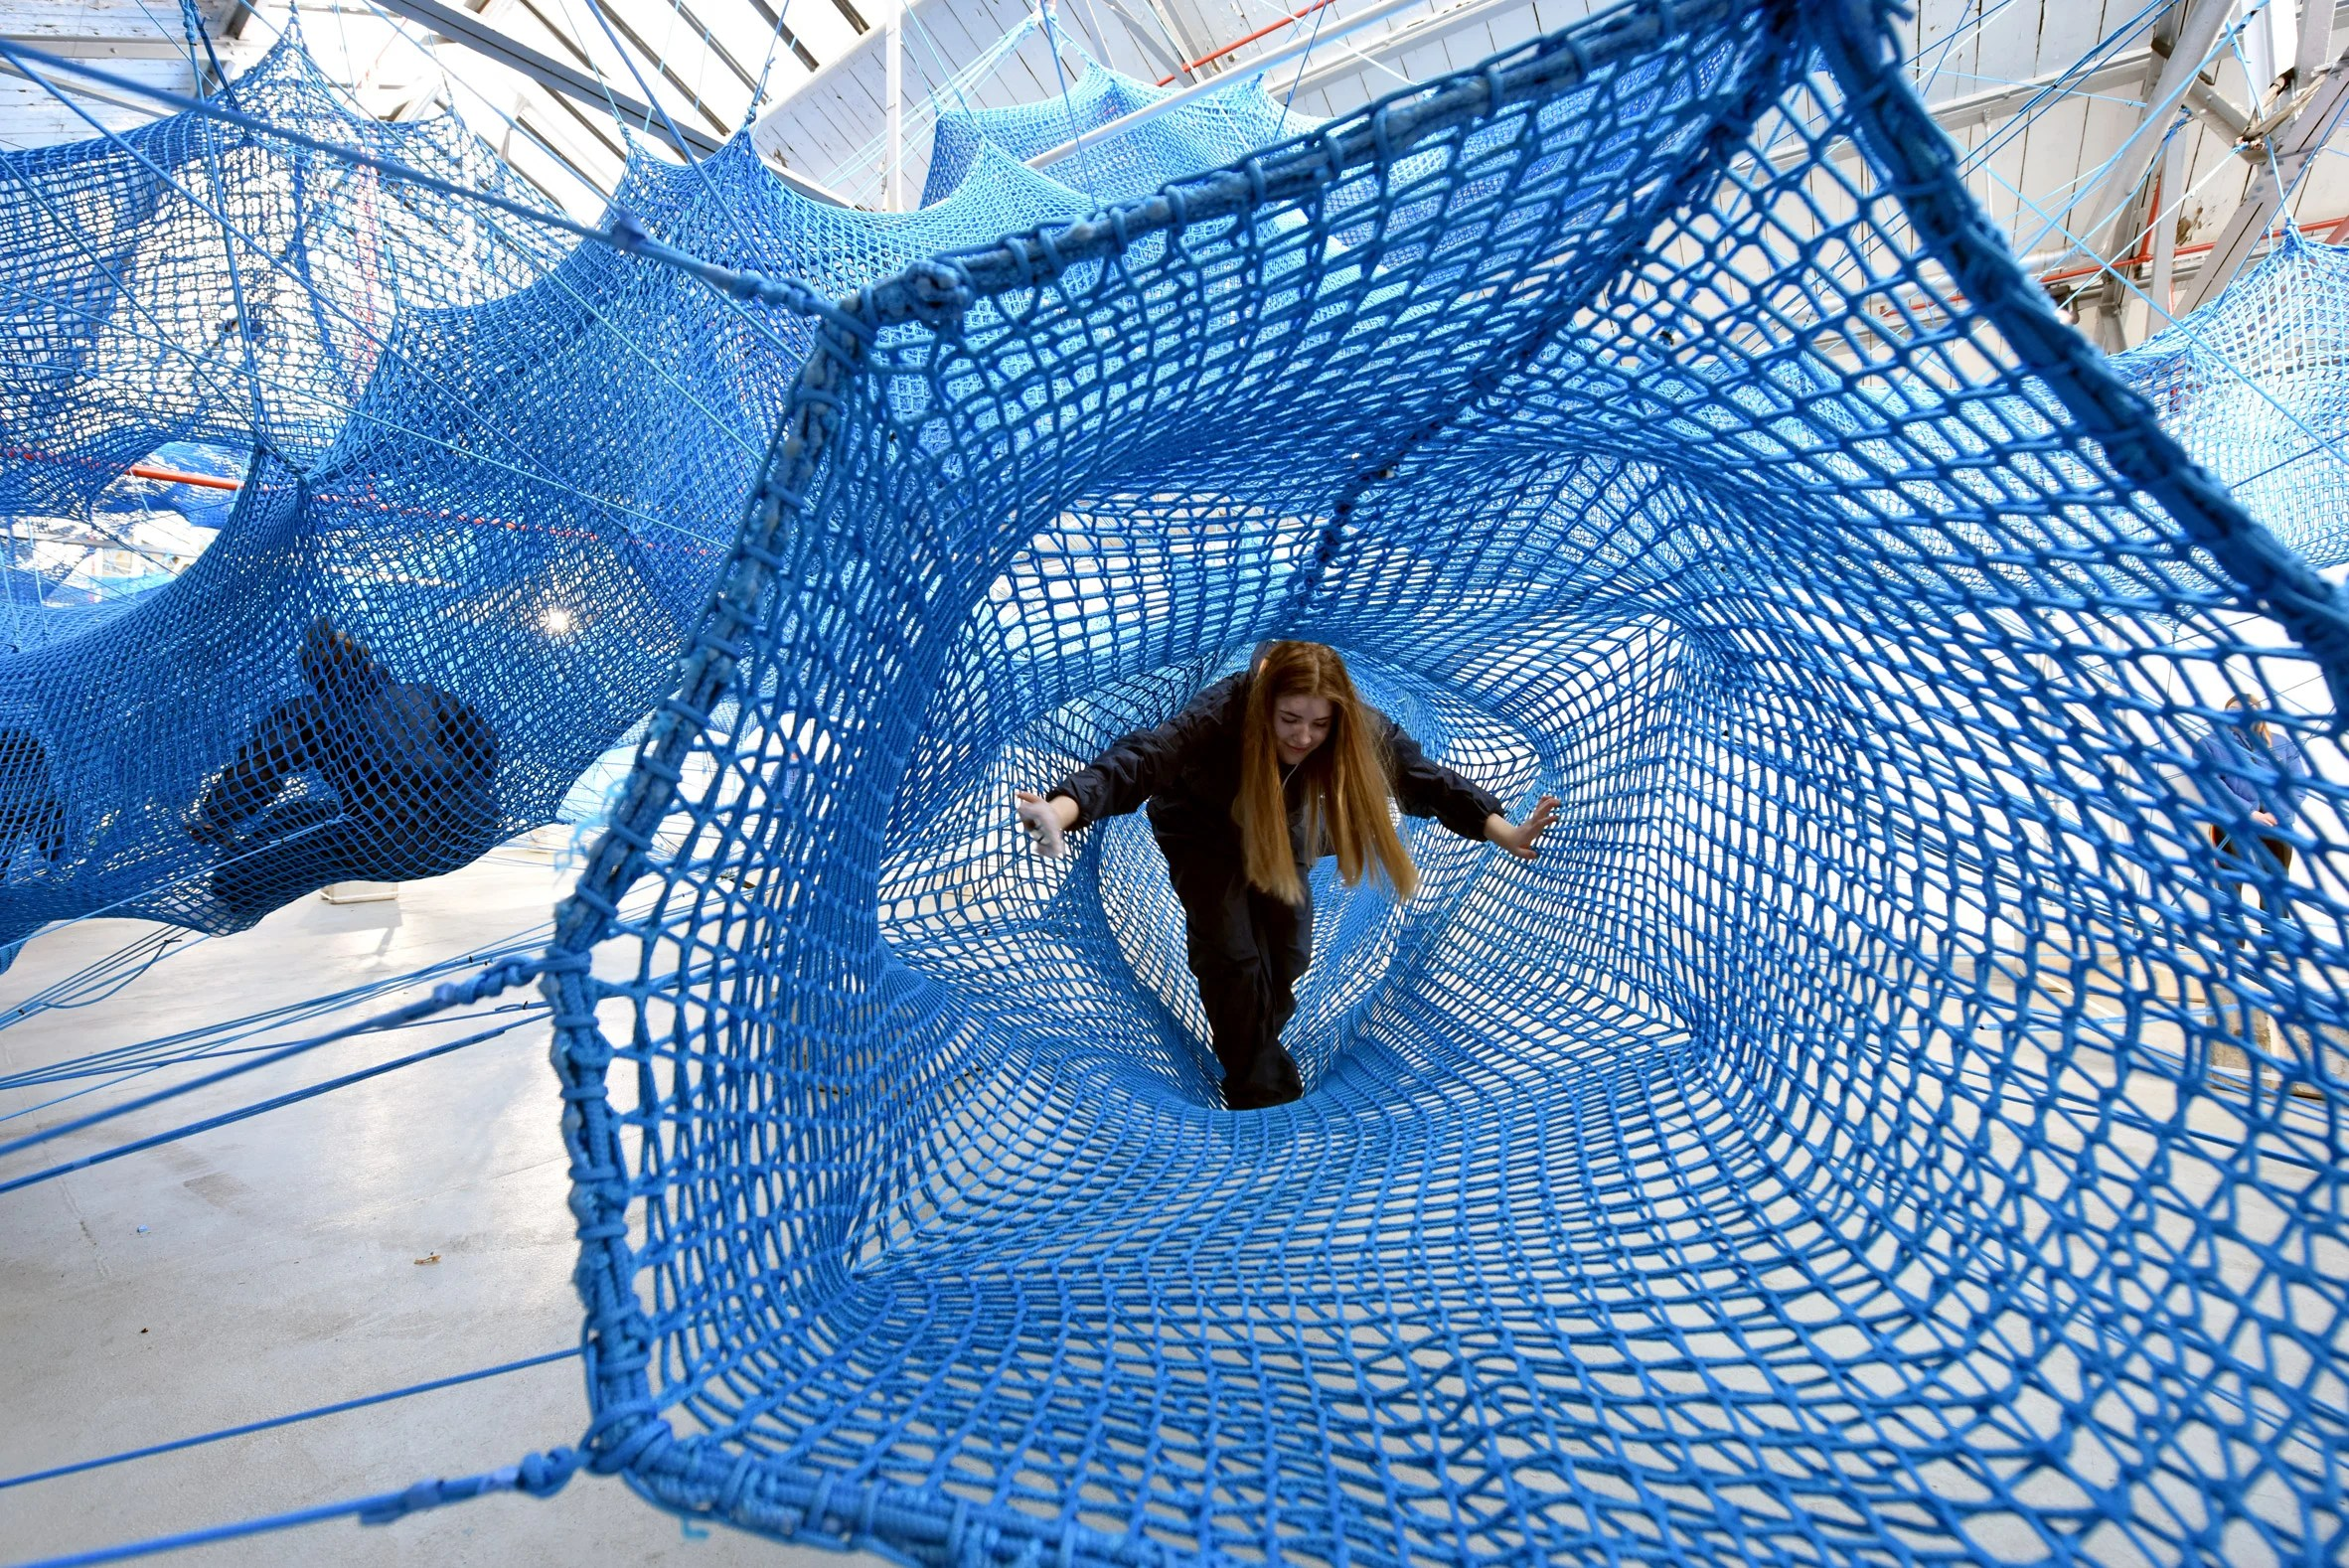 Anya Hindmarch and Numen/For Use create woven network of blue tunnels at London Fashion Week